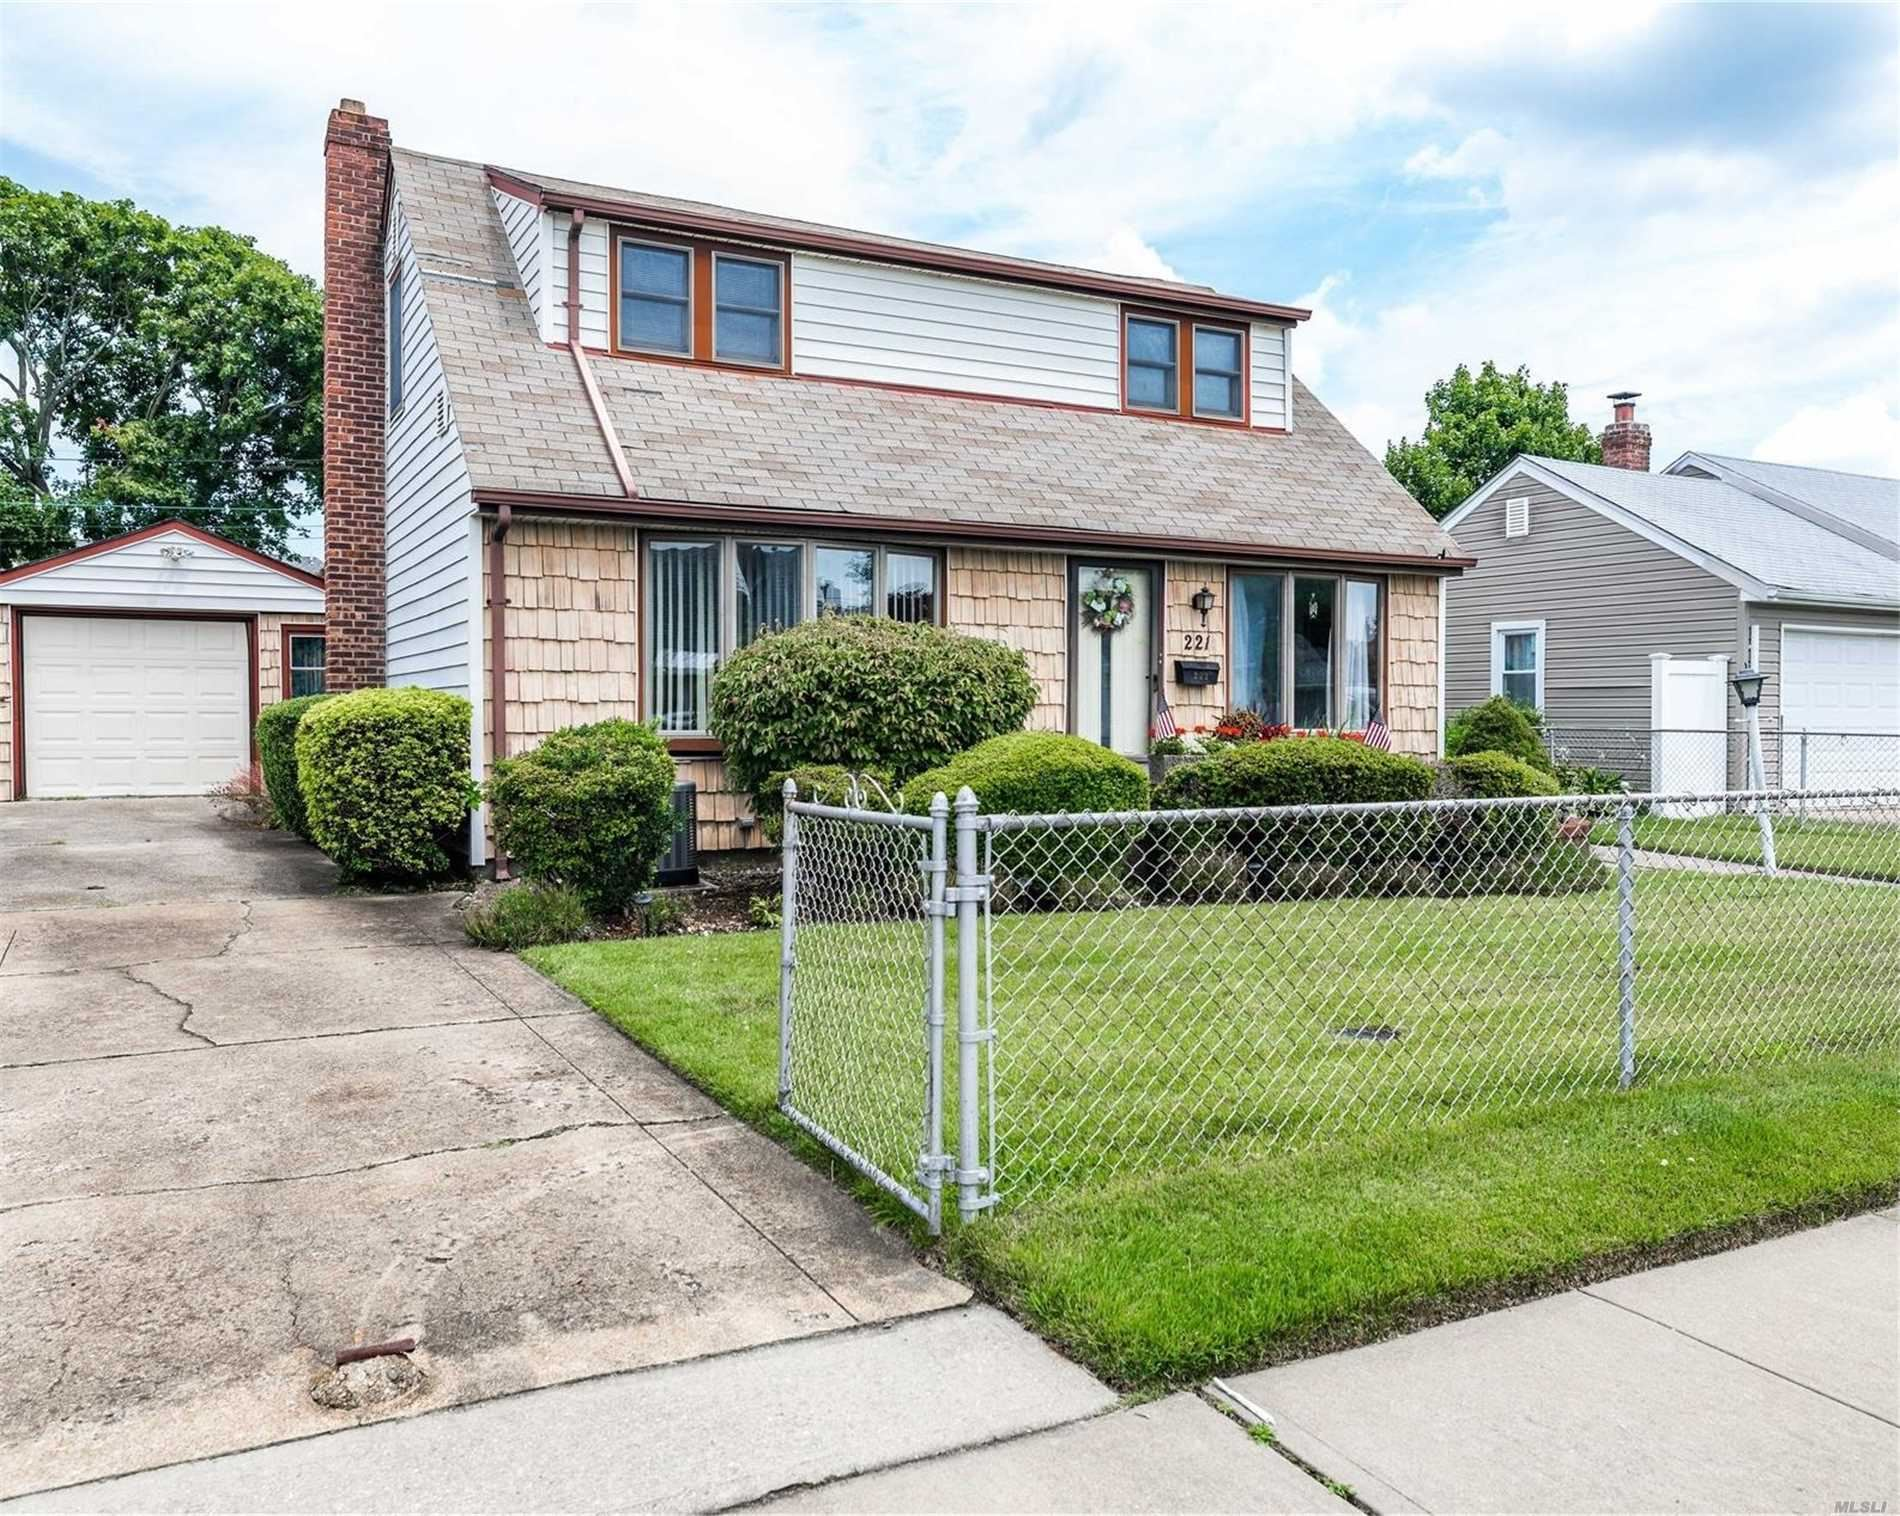 221 Lee Ave, Hicksville, NY 11801 - MLS#: 3236803